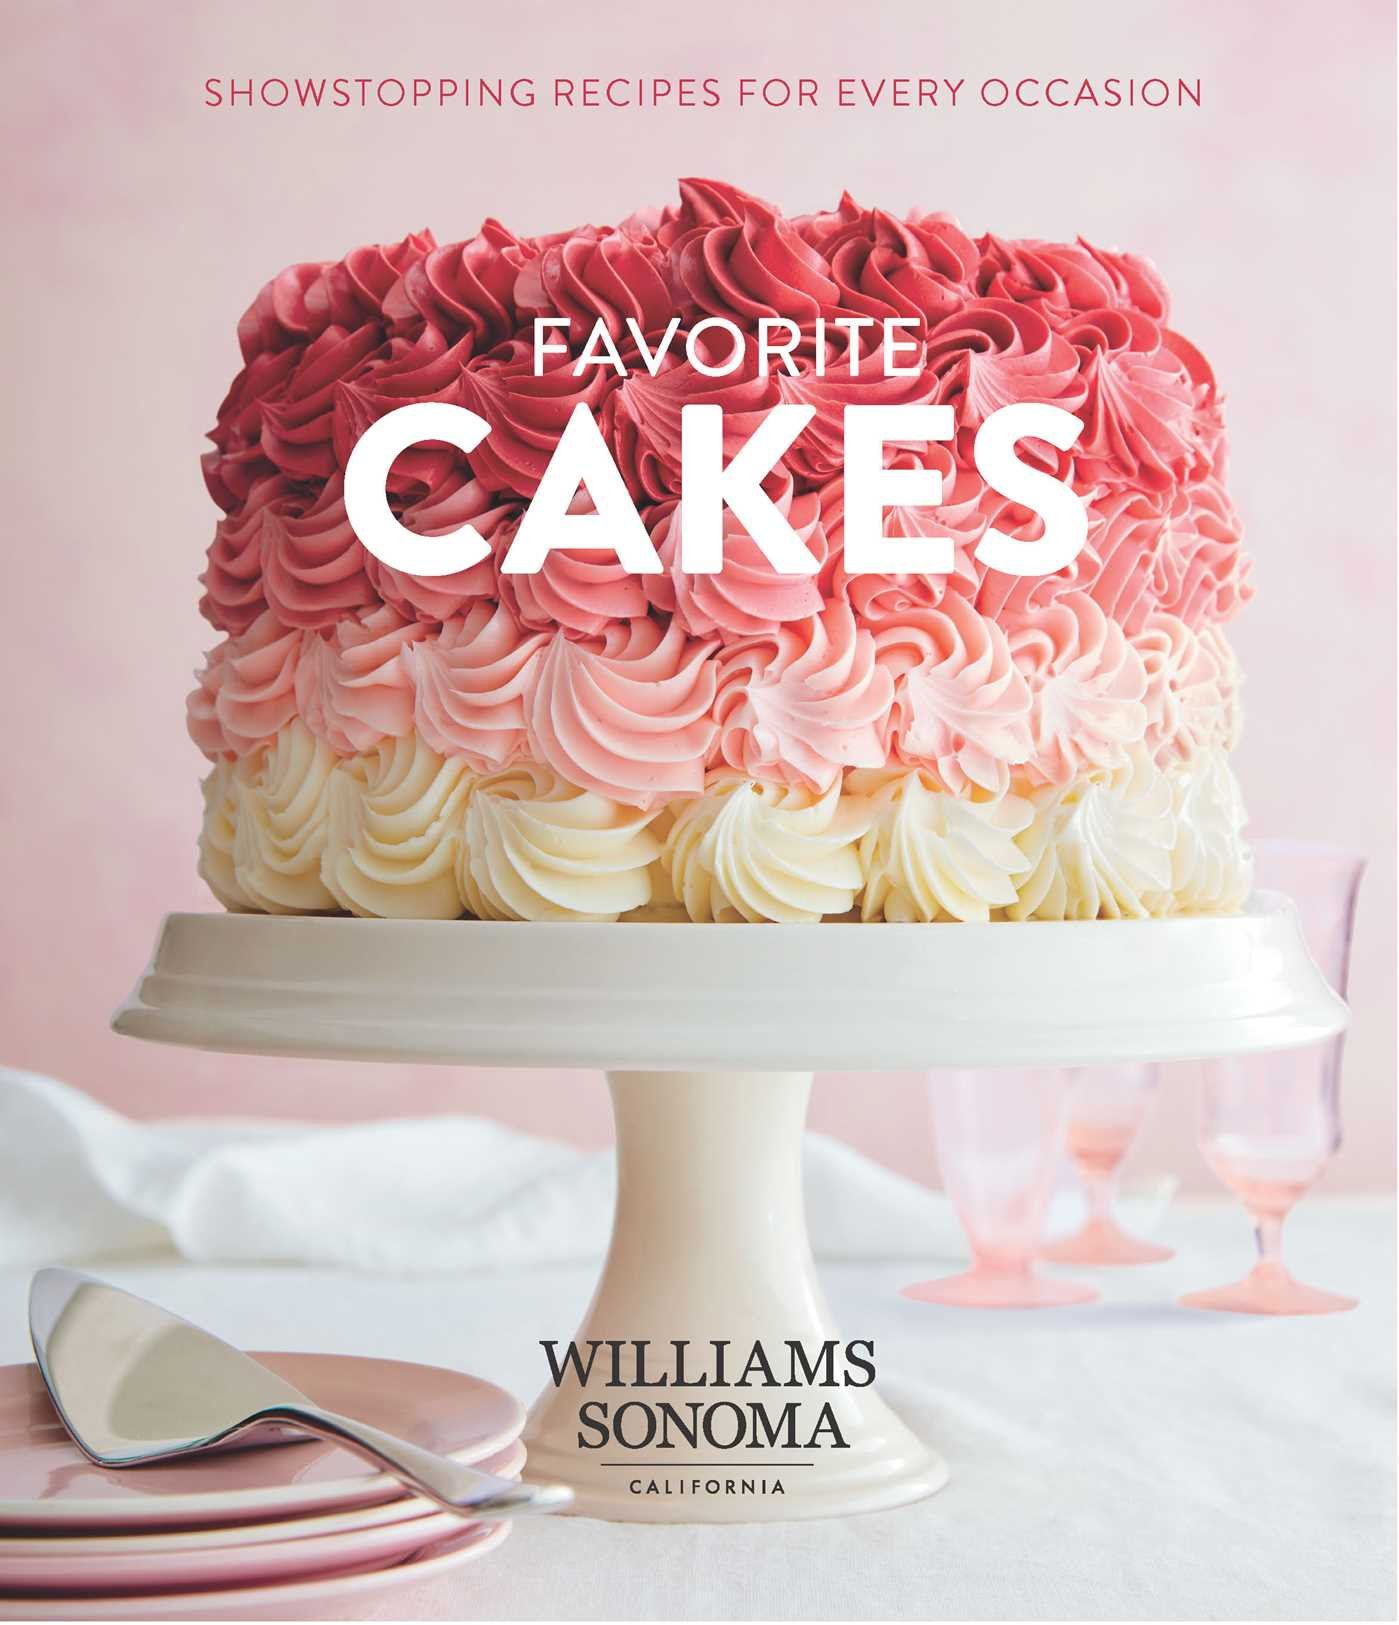 Favorite Cakes: Showstopping Recipes for Every Occasion PDF